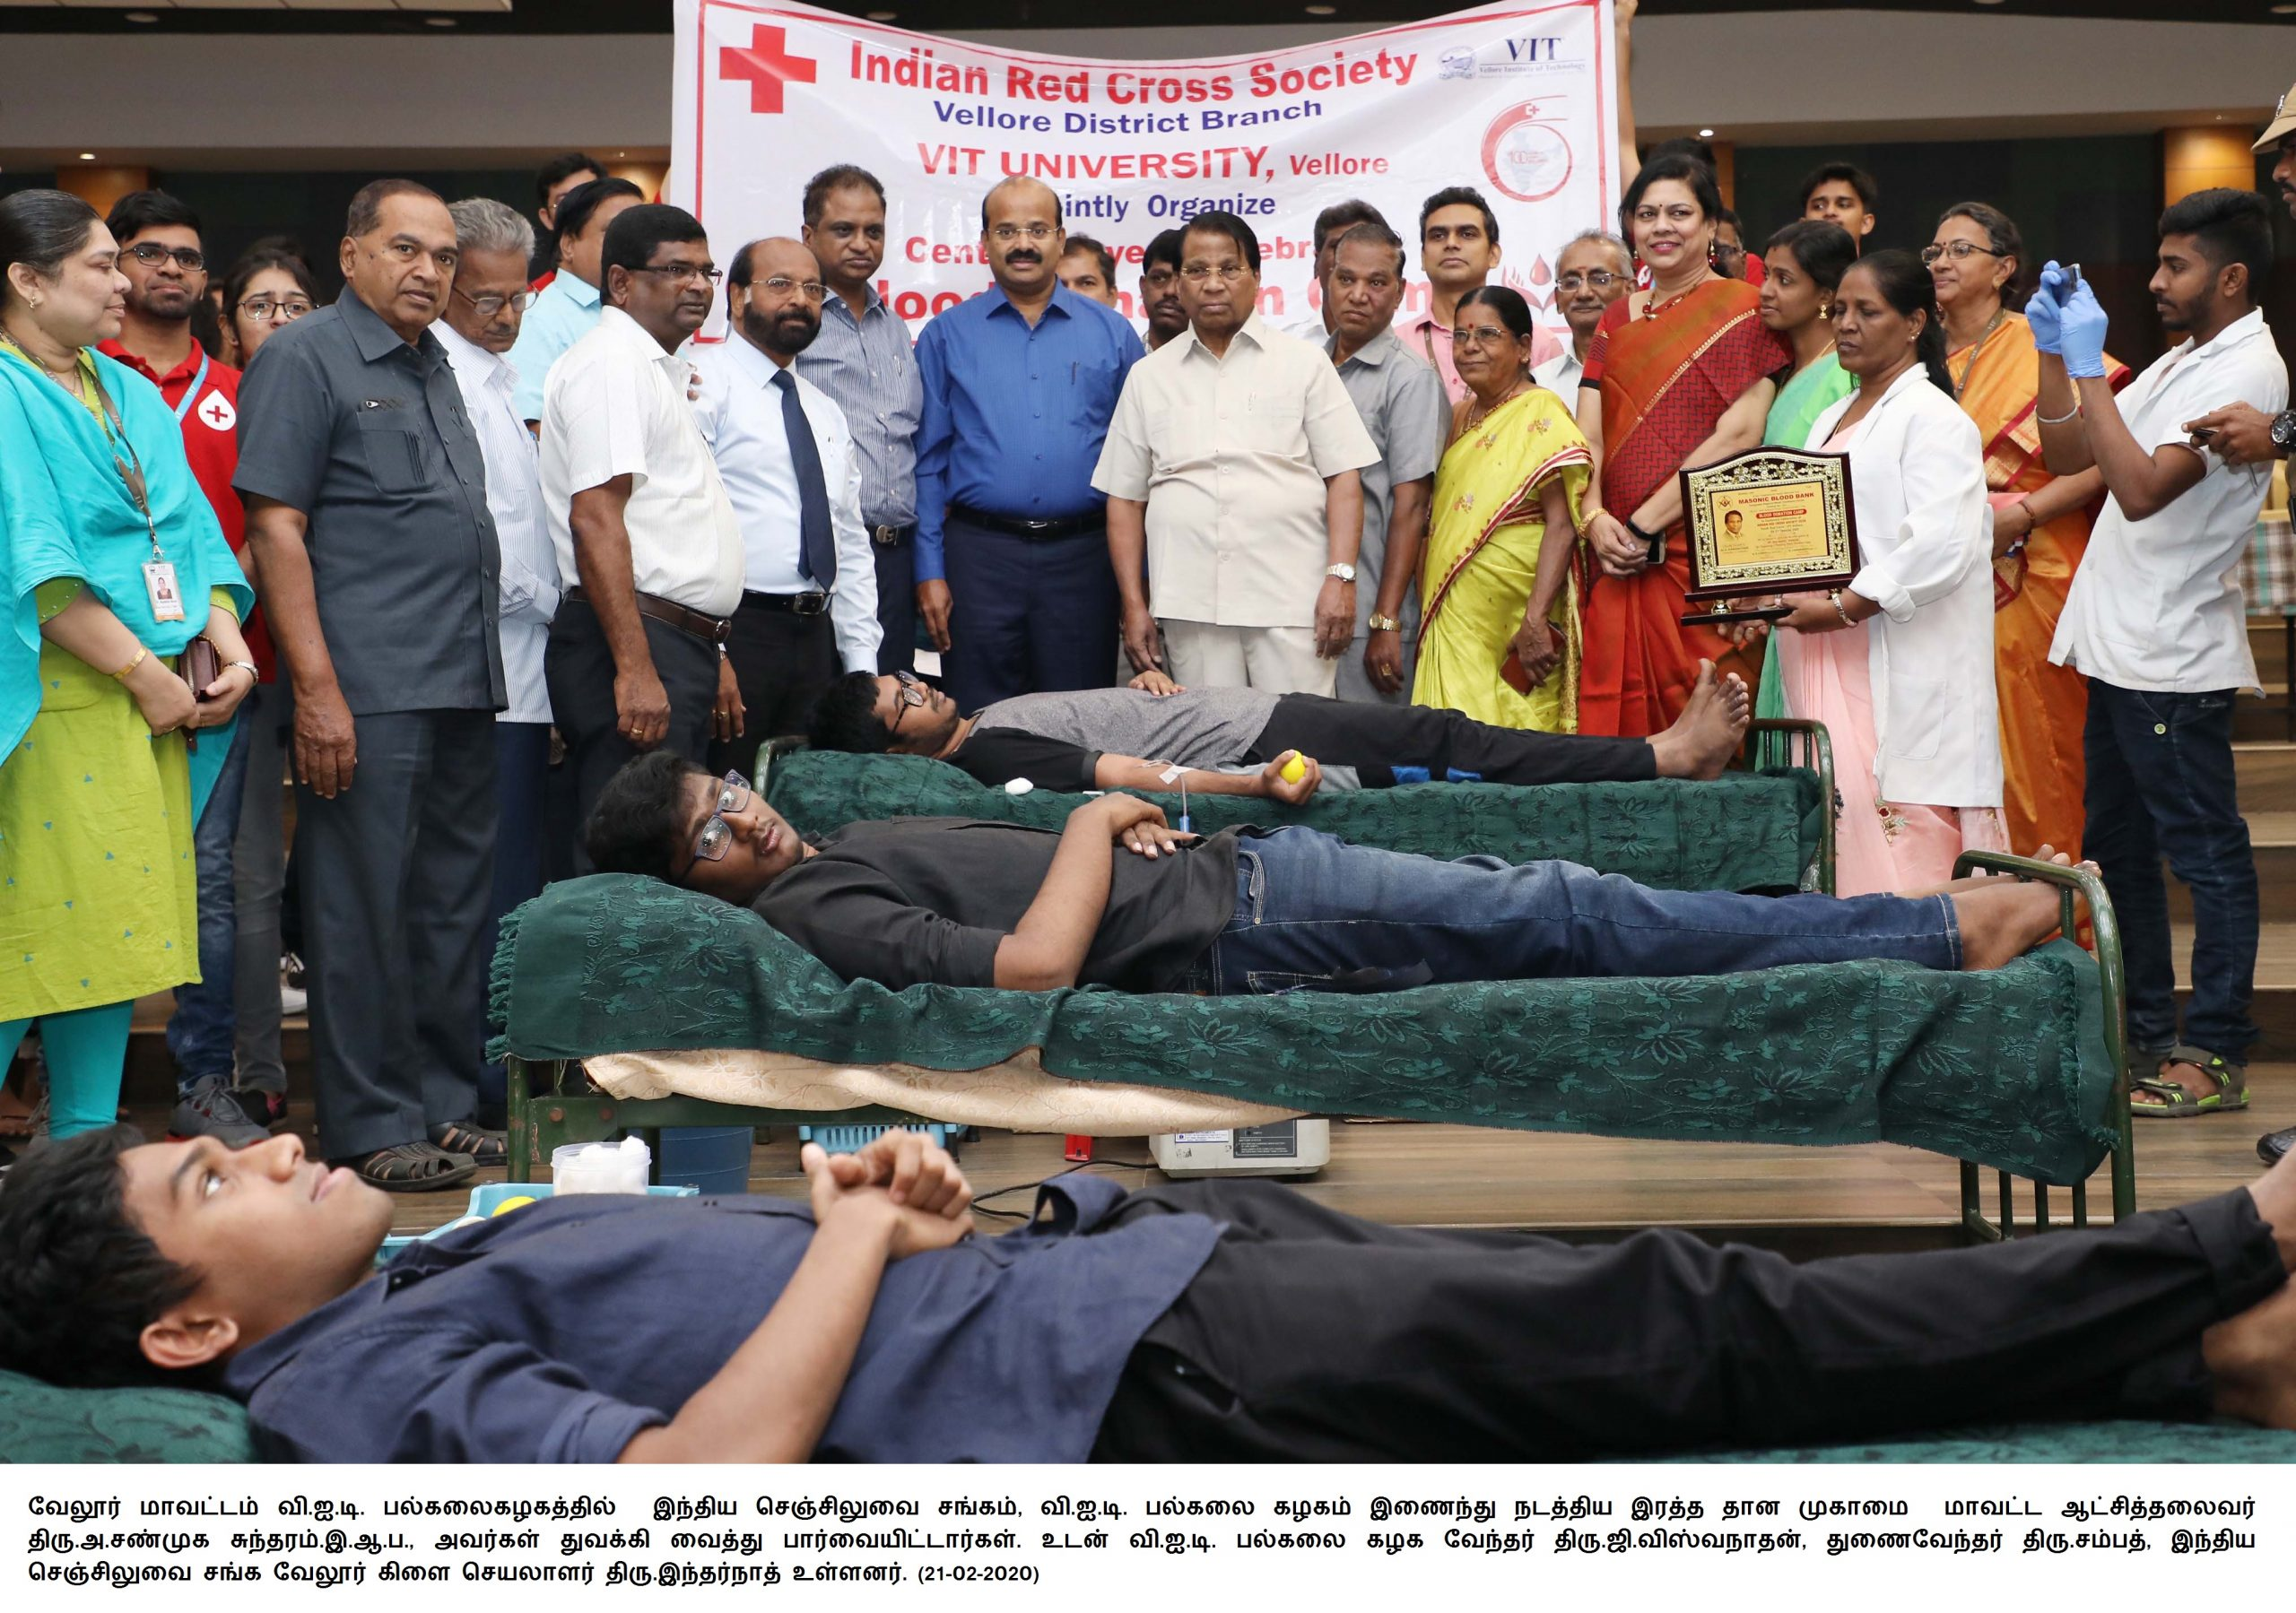 District Collector Inaugurated the Blood Donation camp organised by Indian Red Cross and VIT University 21-02-2020